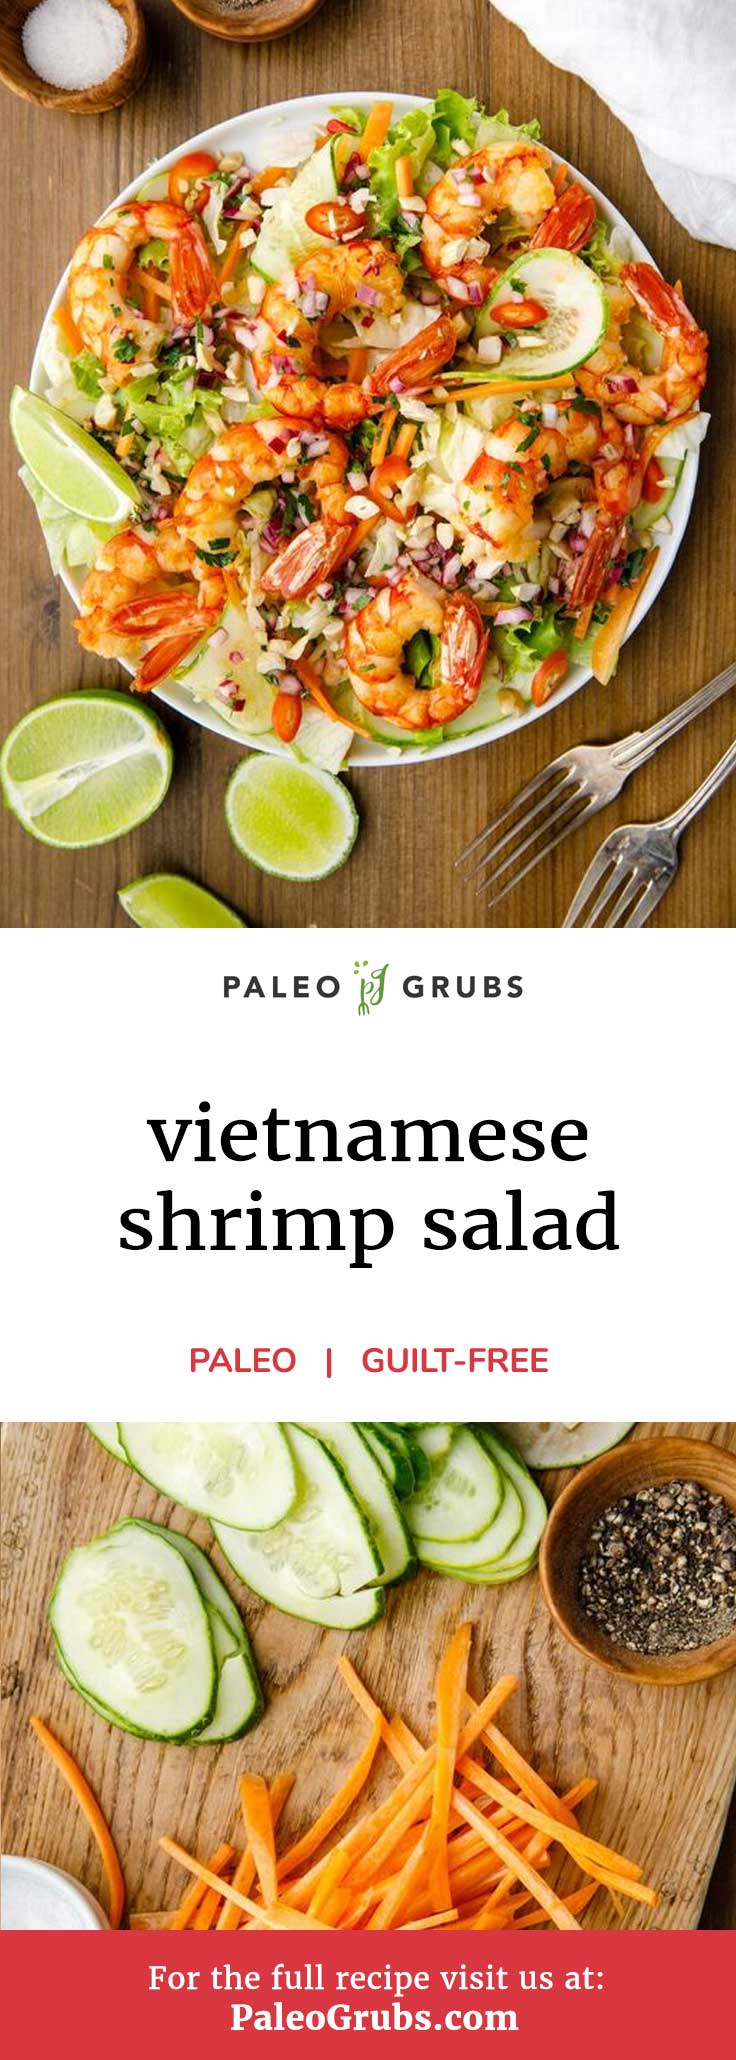 Broaden your horizons when it comes to international cuisine with this mildly spicy Vietnamese shrimp salad that includes a spectacular homemade dressing. It's loaded with fresh vegetables and fresh shrimp, not to mention the homemade paleo dressing that is so tasty, you will want to use it on everything.